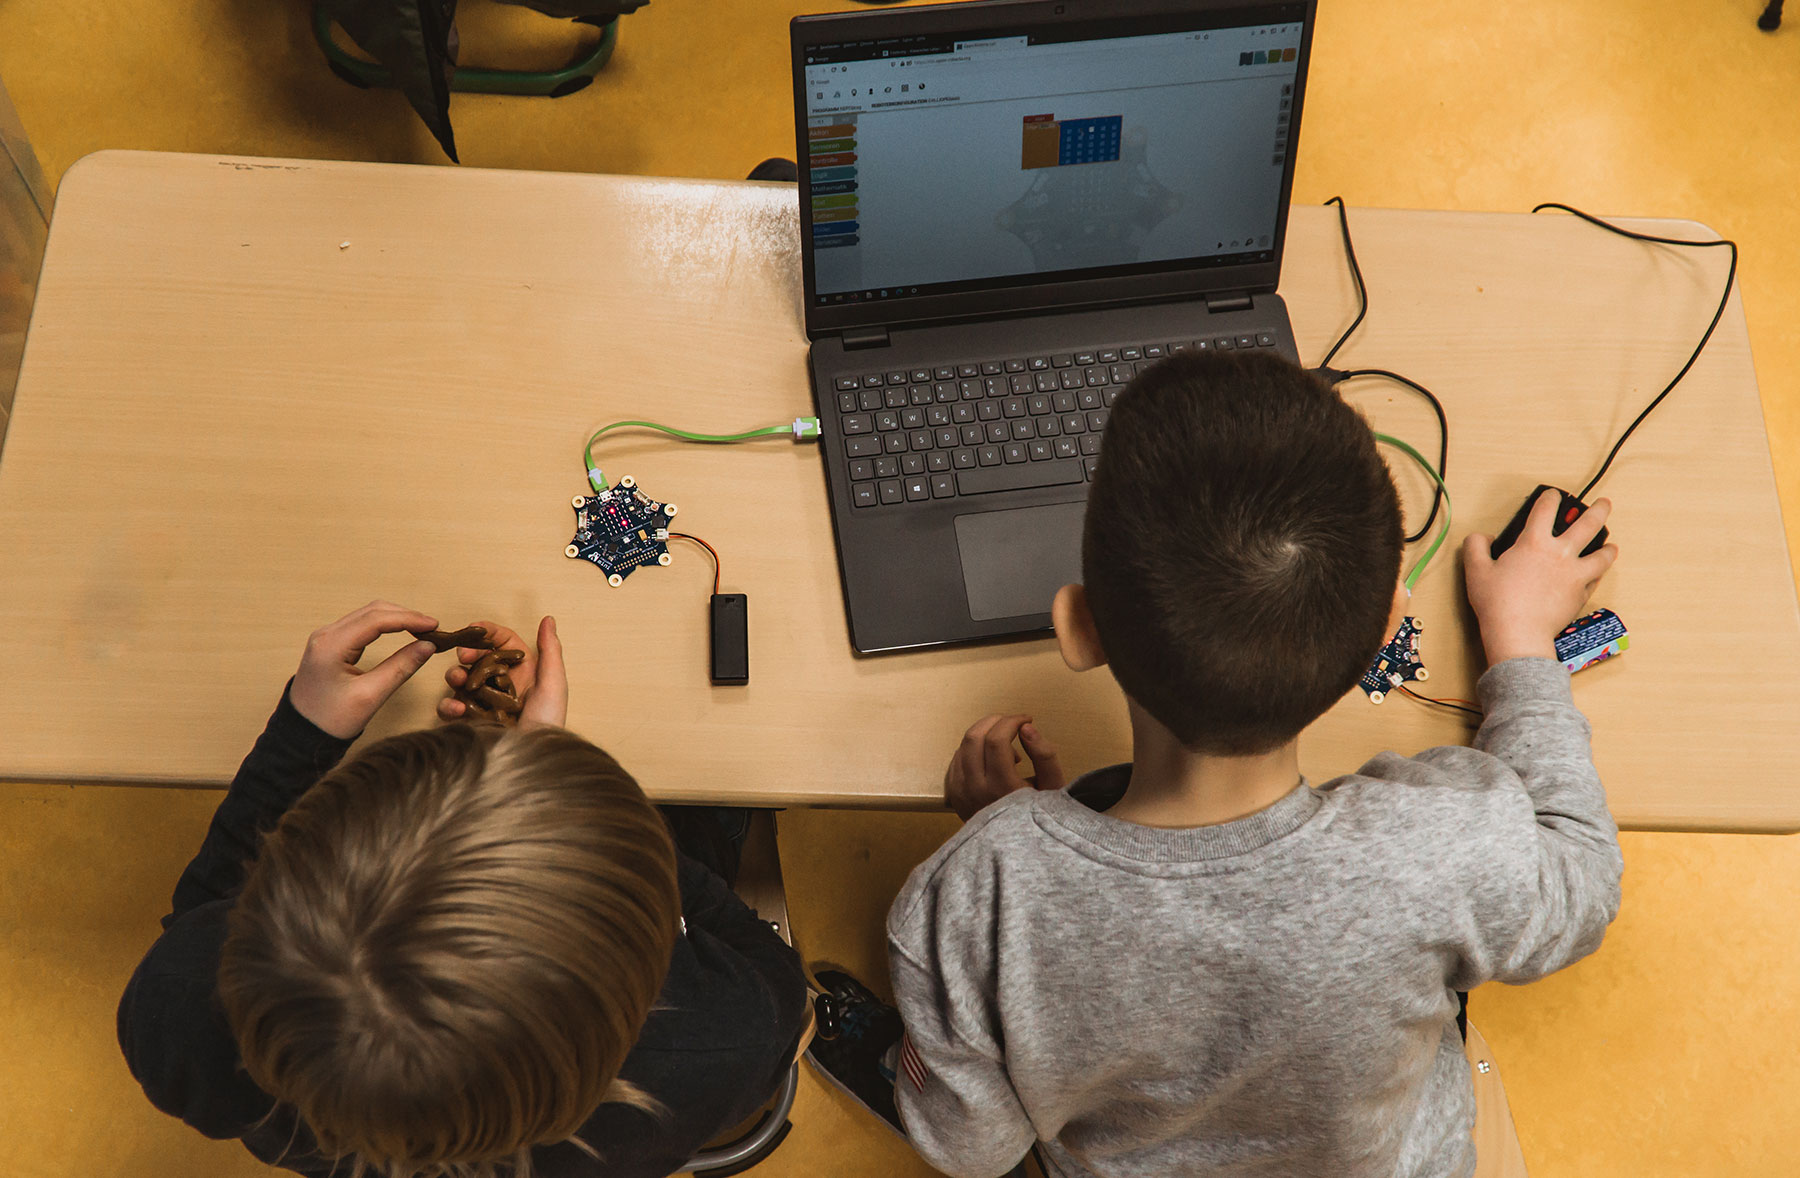 Children using laptop with a mouse connected